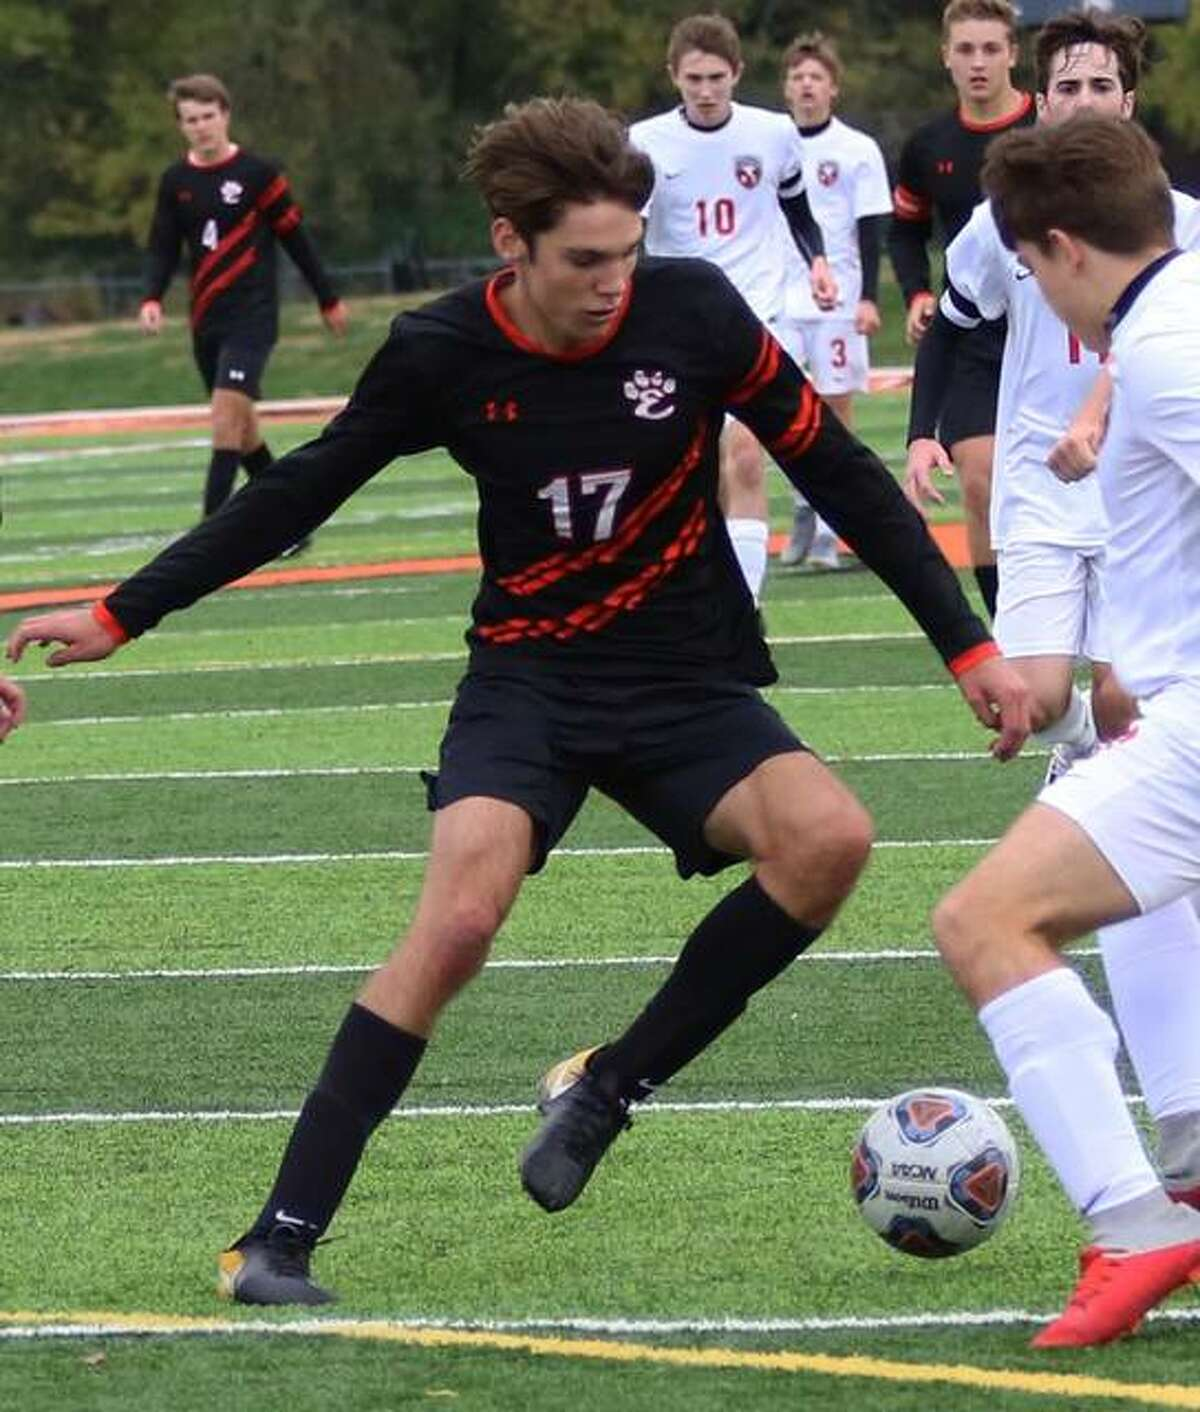 Brennan Weller of Edwardsville battles for the ball during a Southwestern Conference game against Alton.